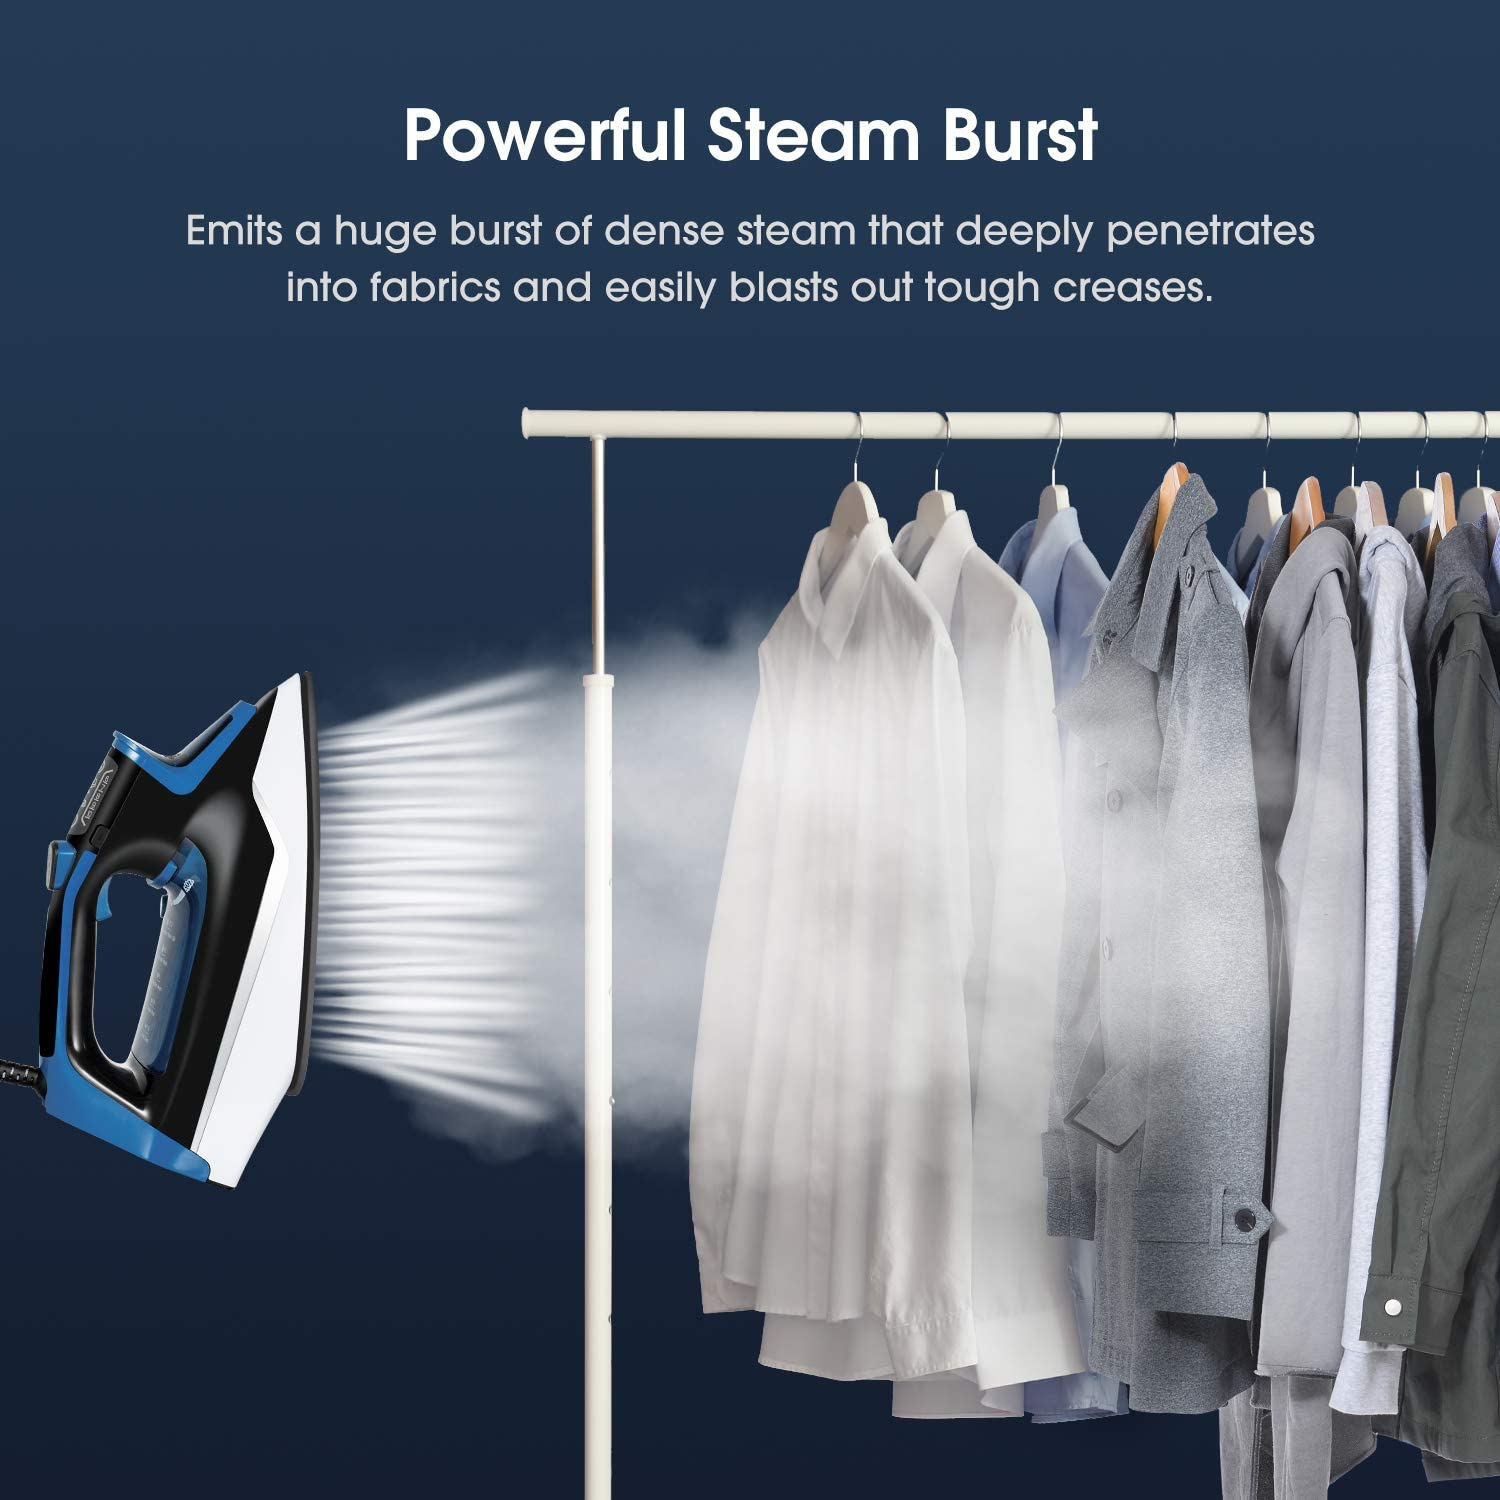 Garment Steamer Anti-Drip Non-Stick Soleplate Iron with Conveniently Vertical Spray Steam Iron Professional Clothes Steamer 2720-Watt Fabric Steamer Wrinkle Remover with Fast Heat-up